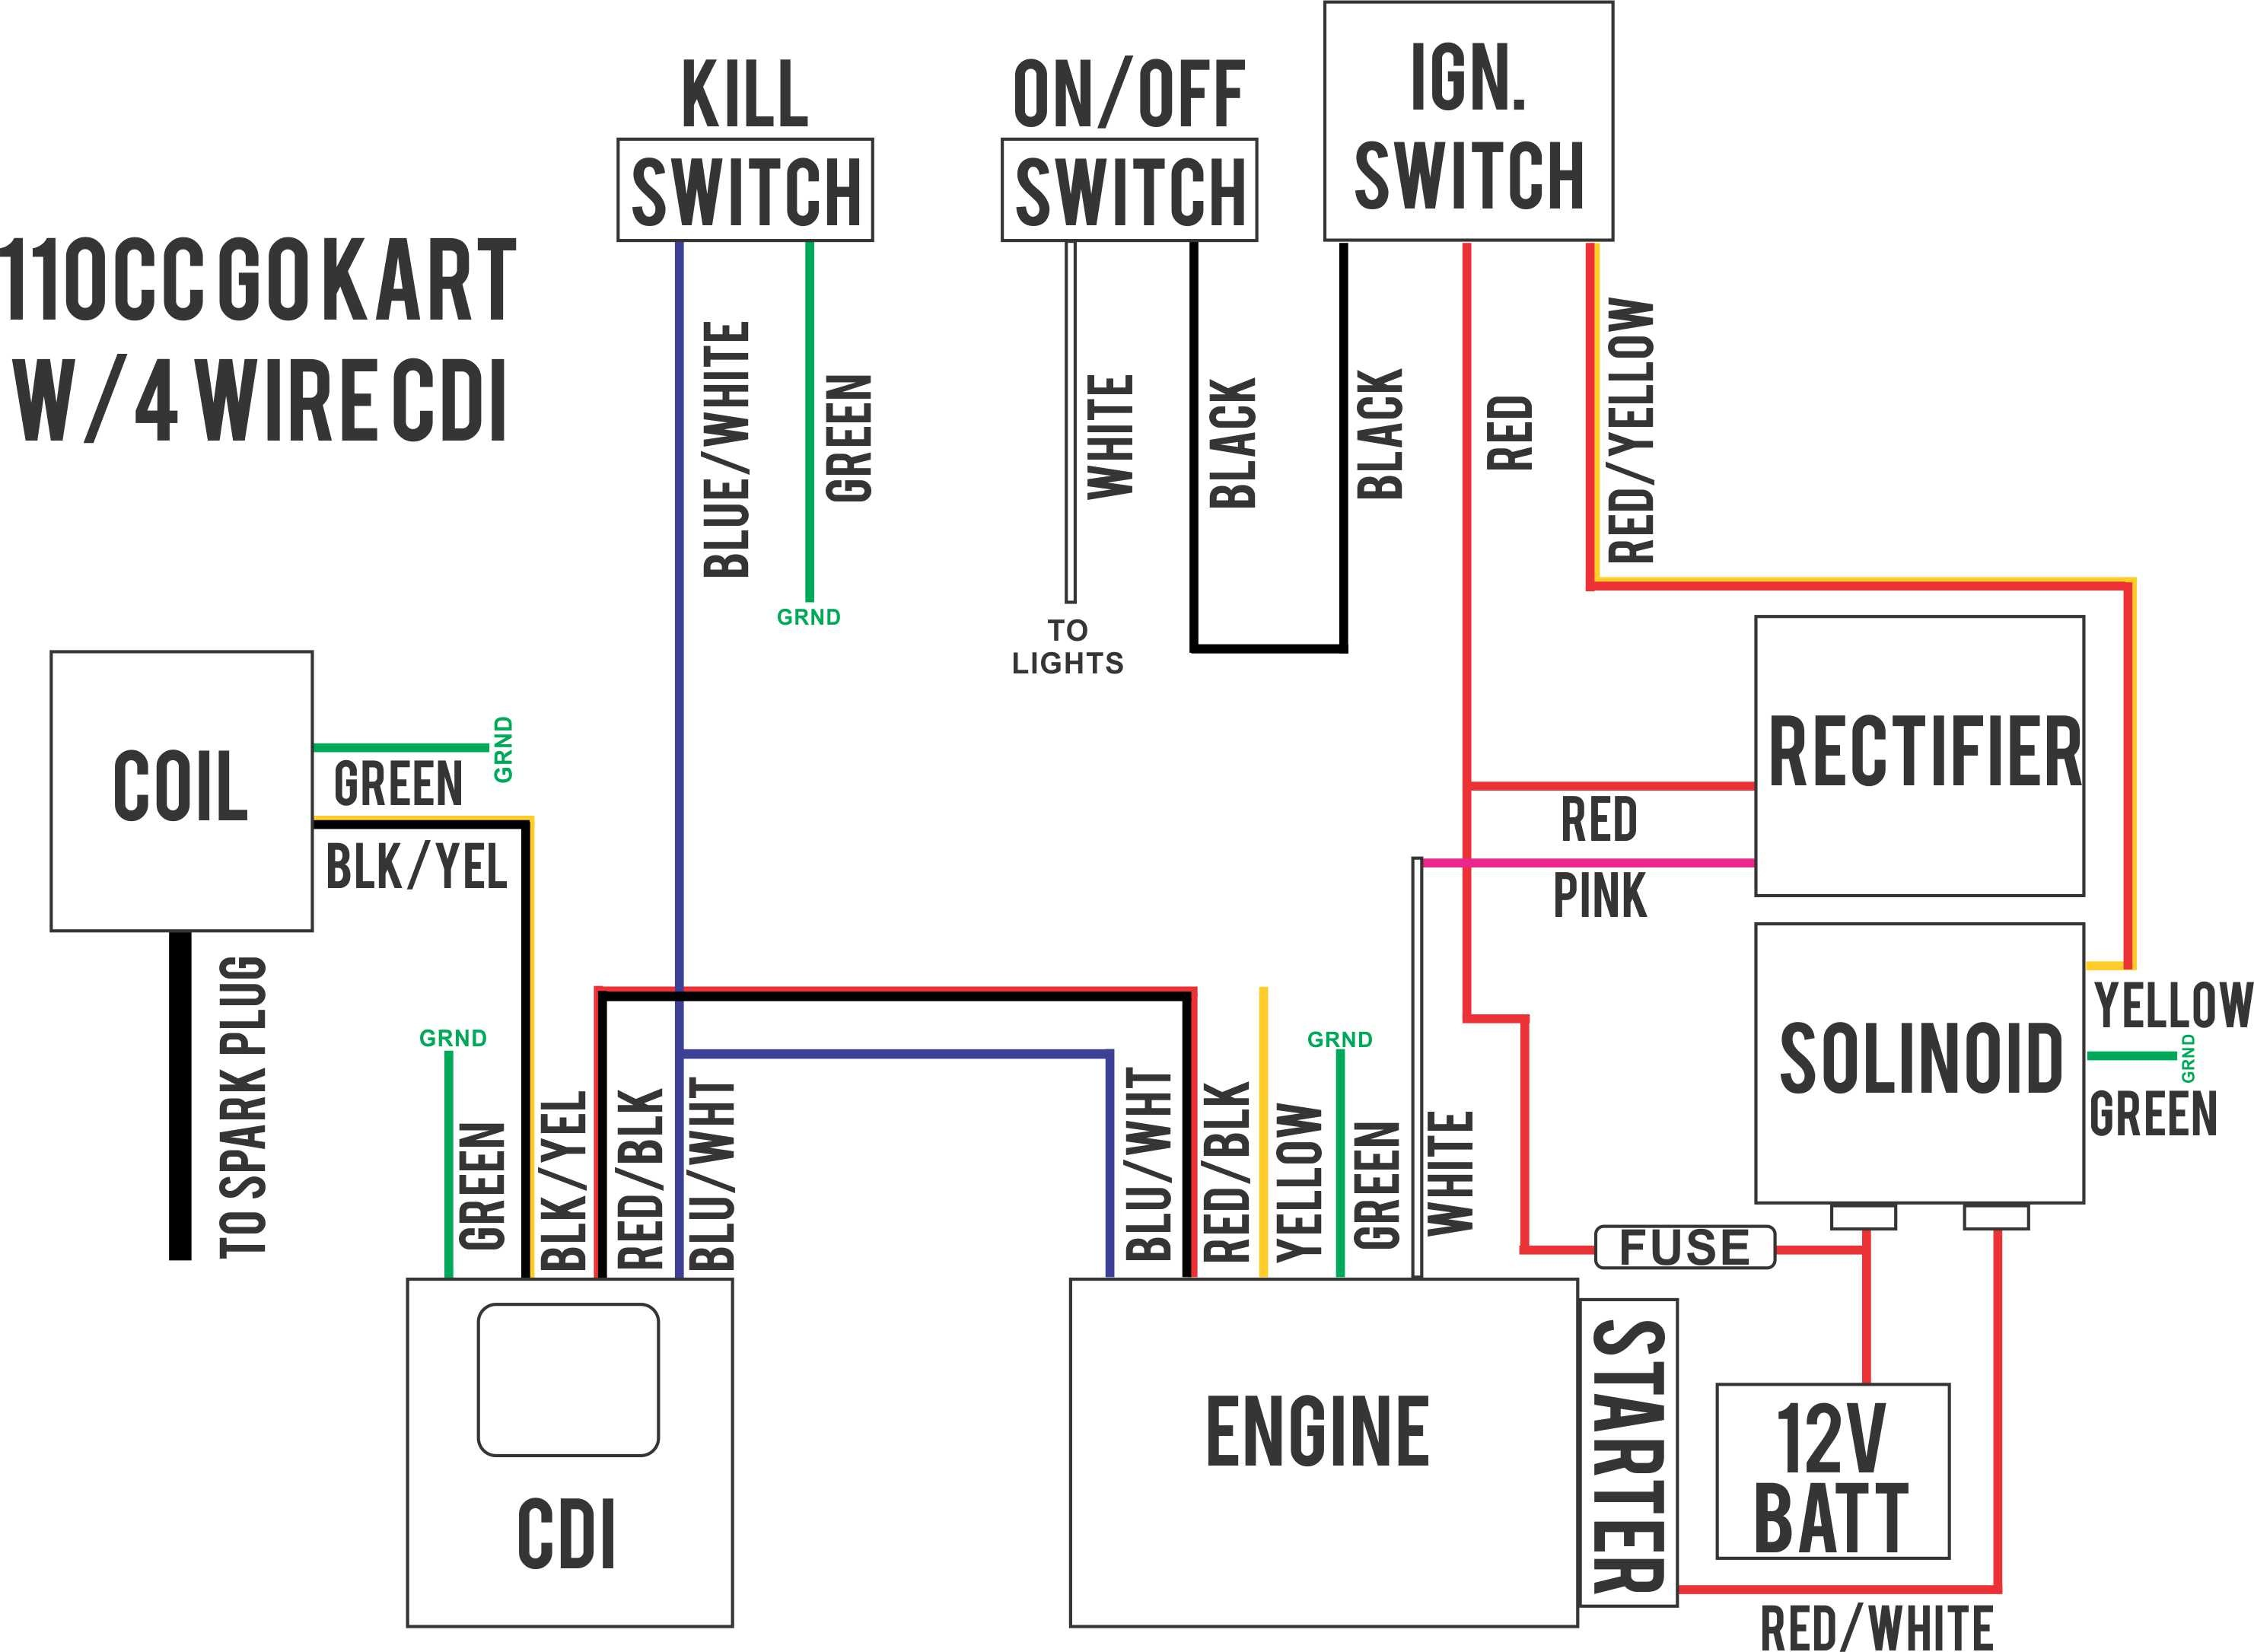 150cc gy6 scooter wire harness diagram data wiring diagrams rh 19 mjkl treatymonitoring de